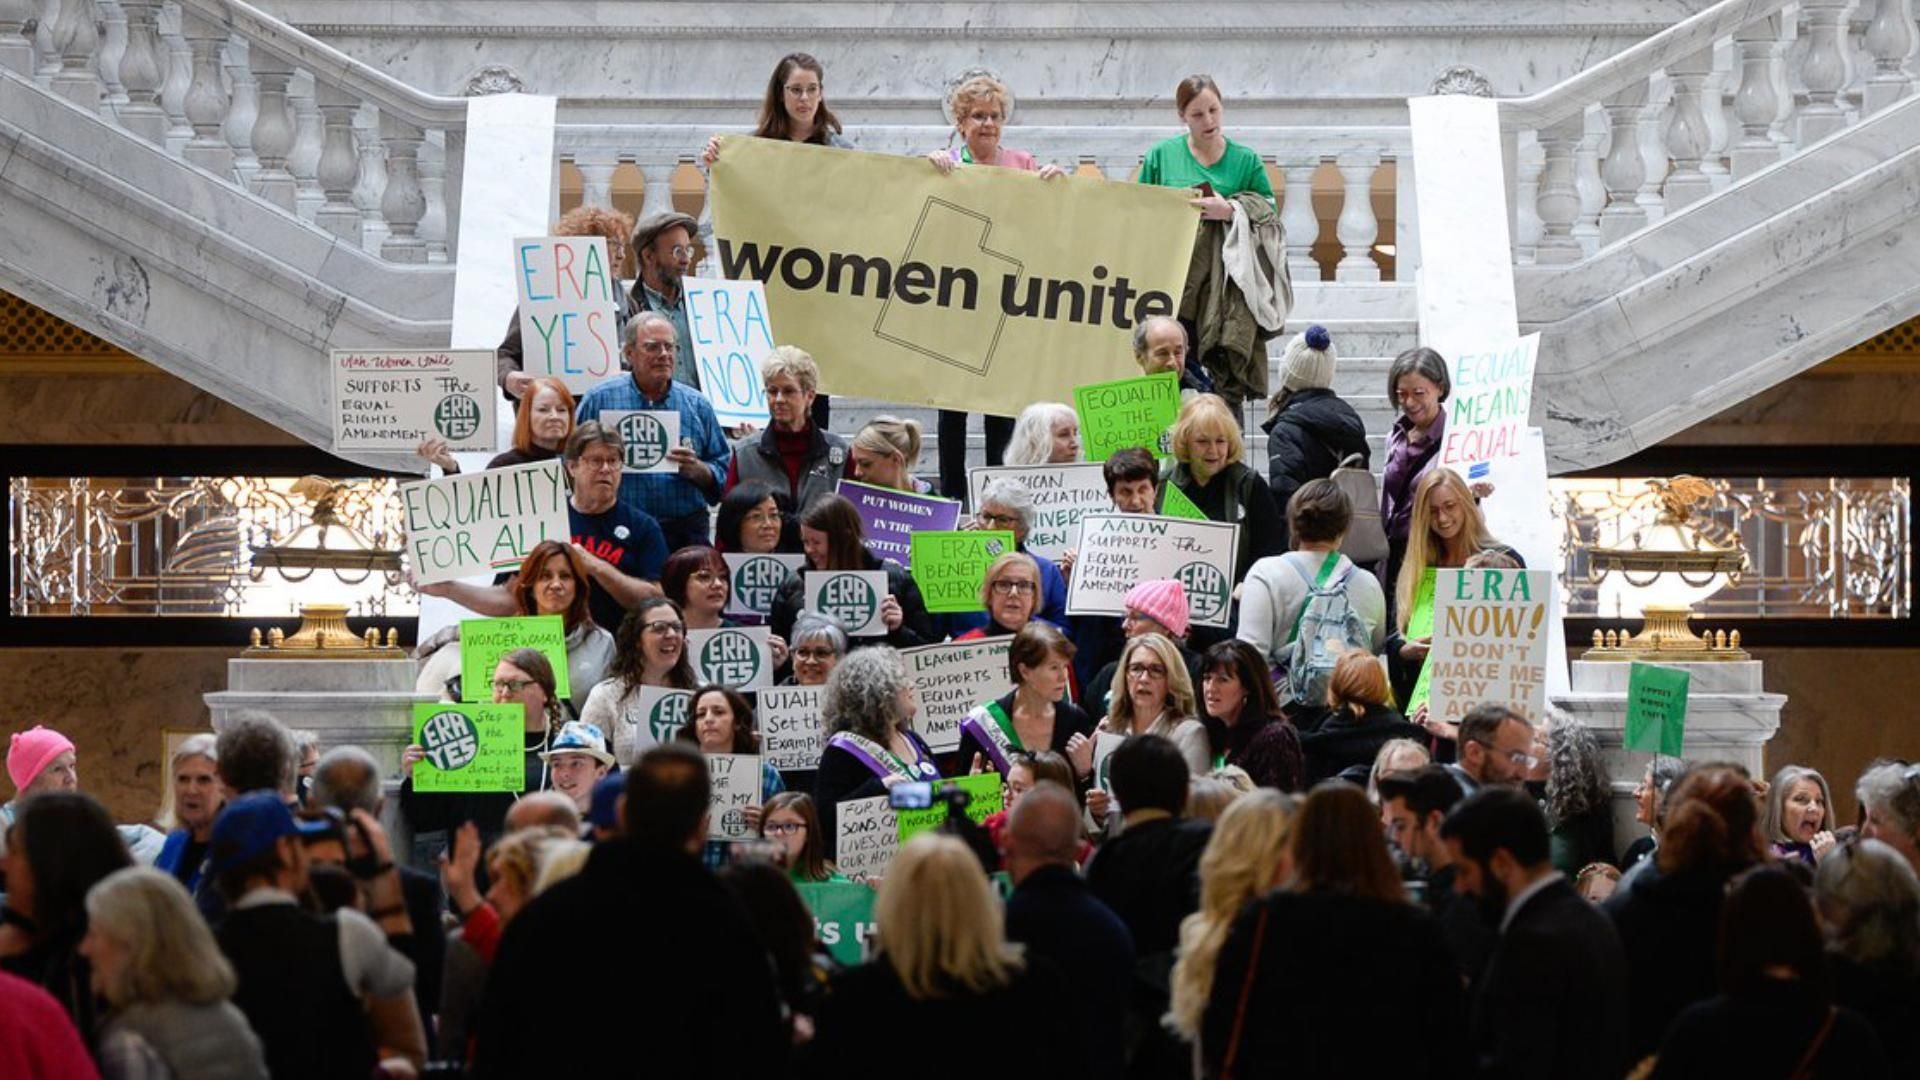 Lds Church Announces It Still Opposes Equal Rights Amendment As Supporters Rally At Capitol Equal Rights Lds Church Equal Rights Amendment